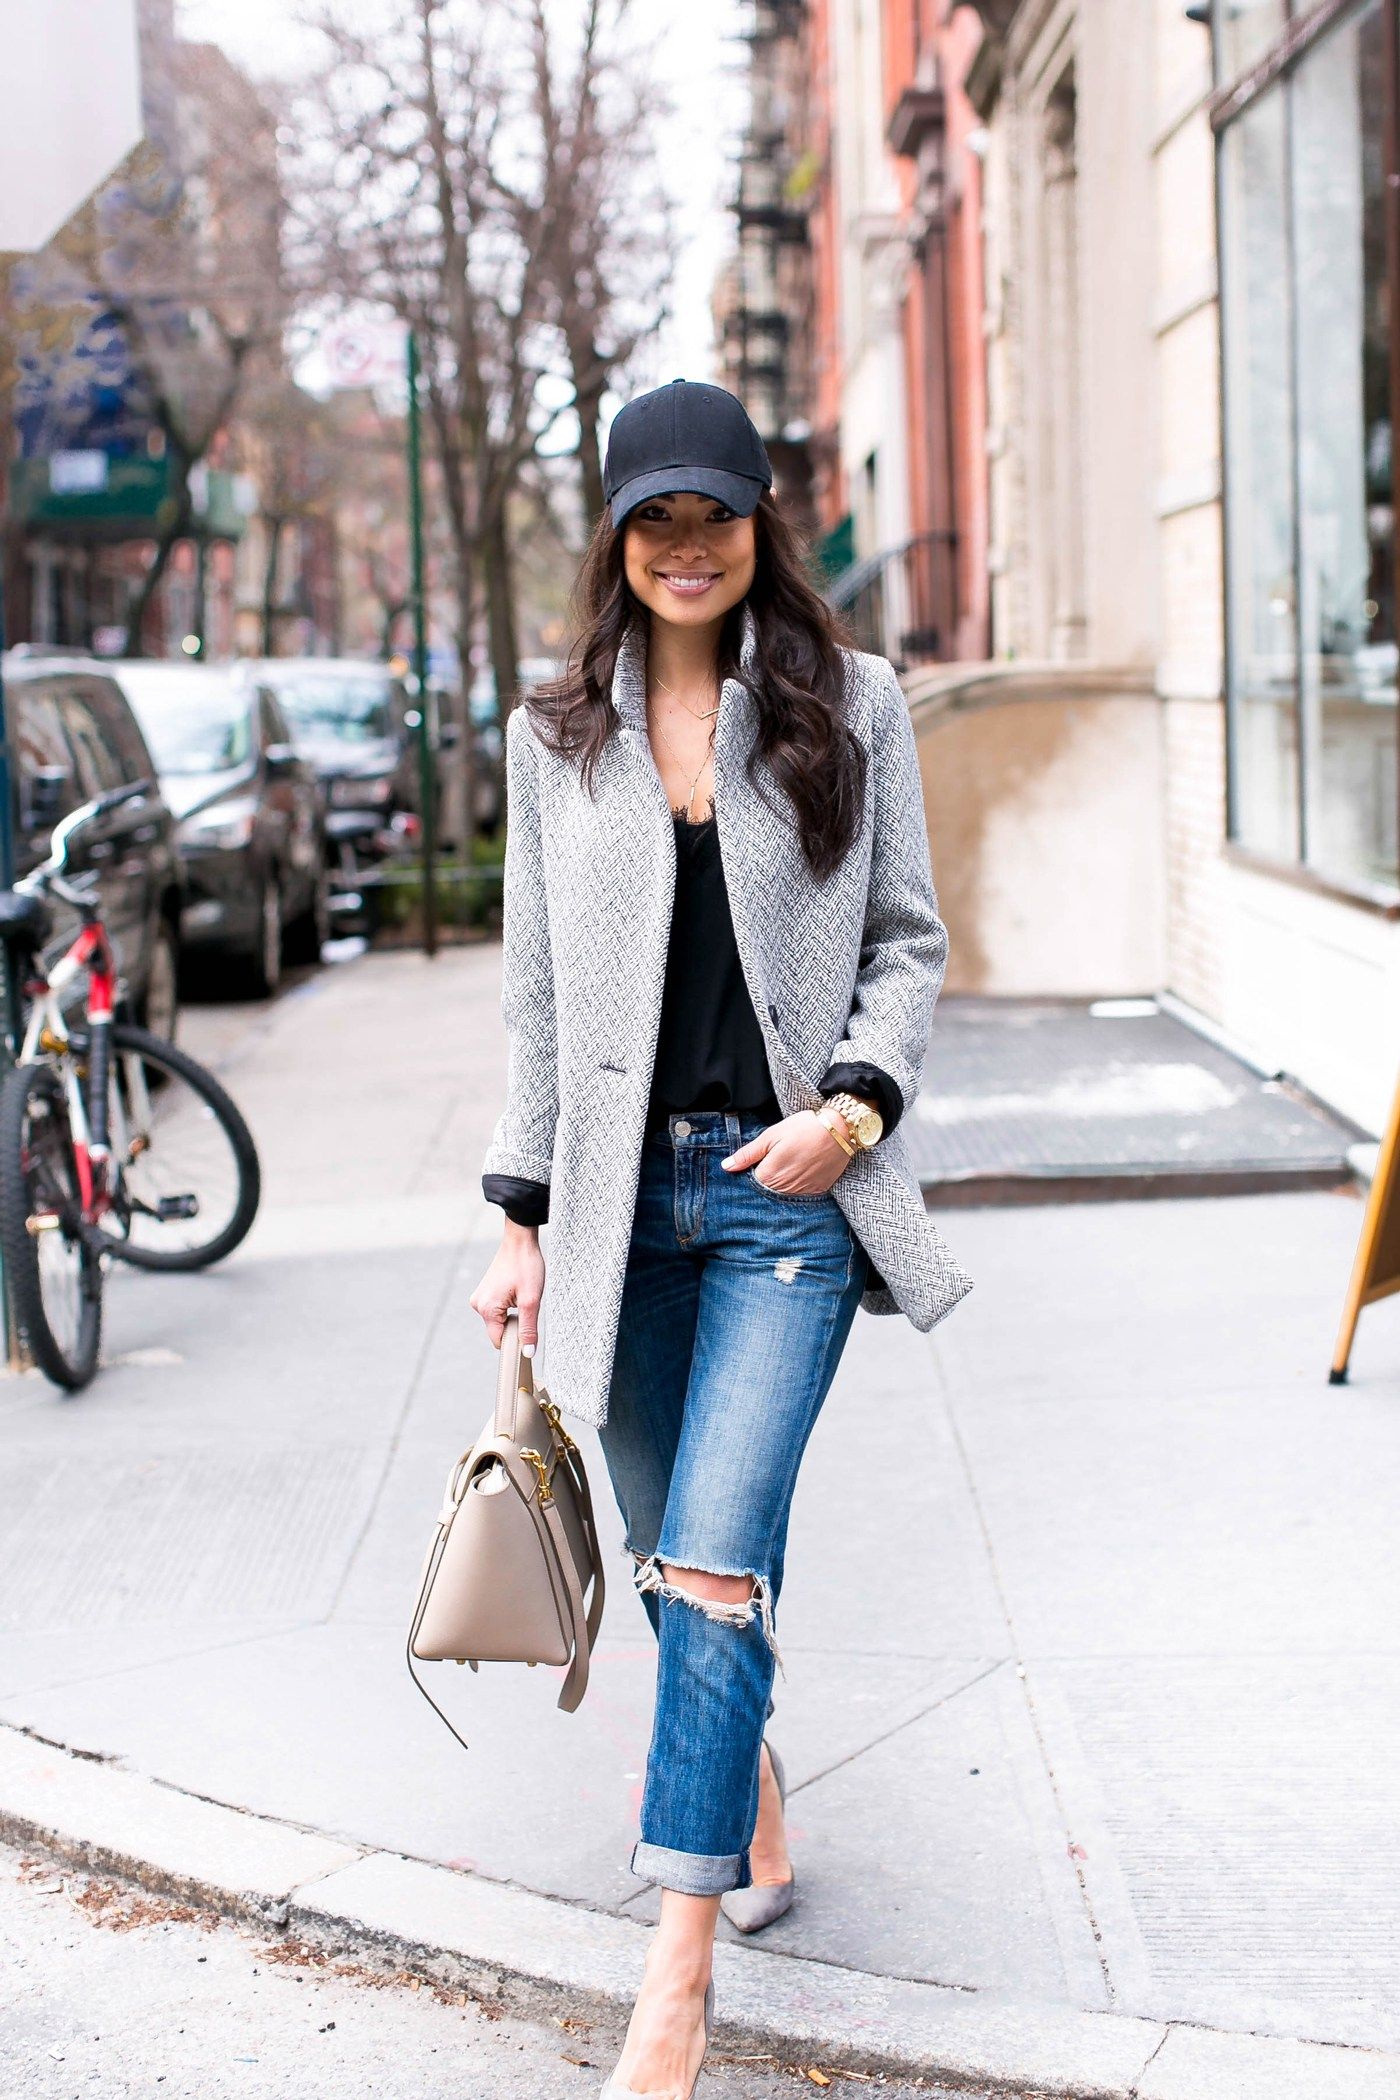 b6f6dccfc2a New York Winter Outfit 43. With Love From Kat.